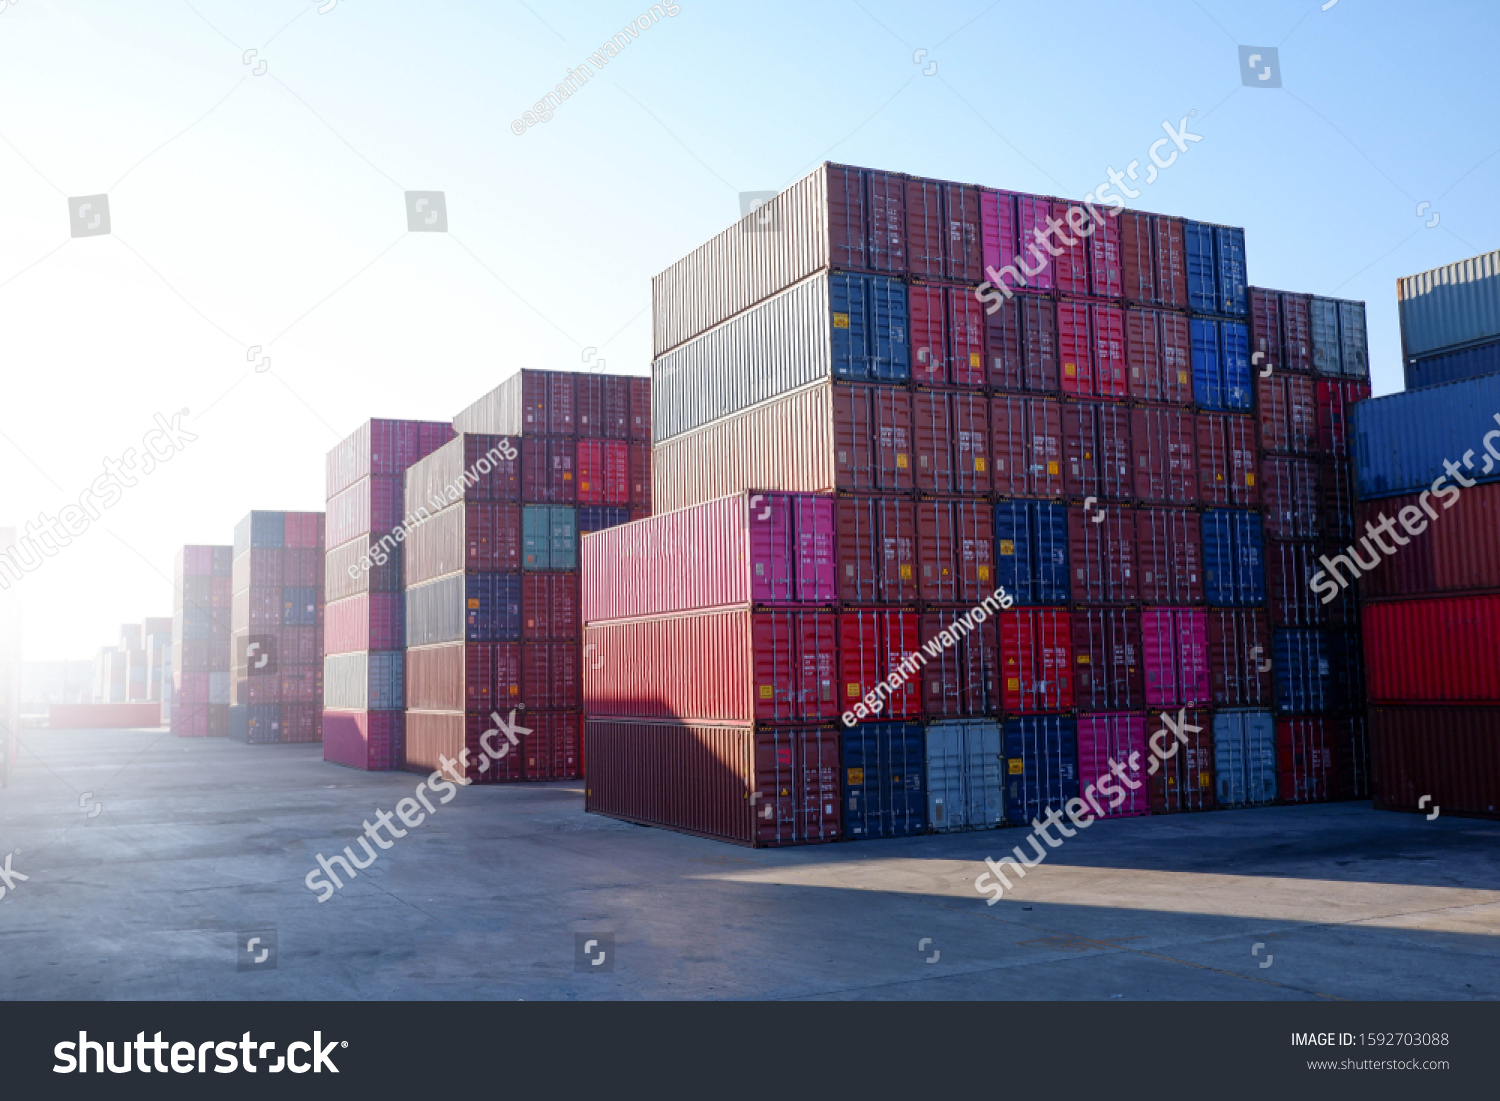 Stack containers for import and export concepts. #1592703088